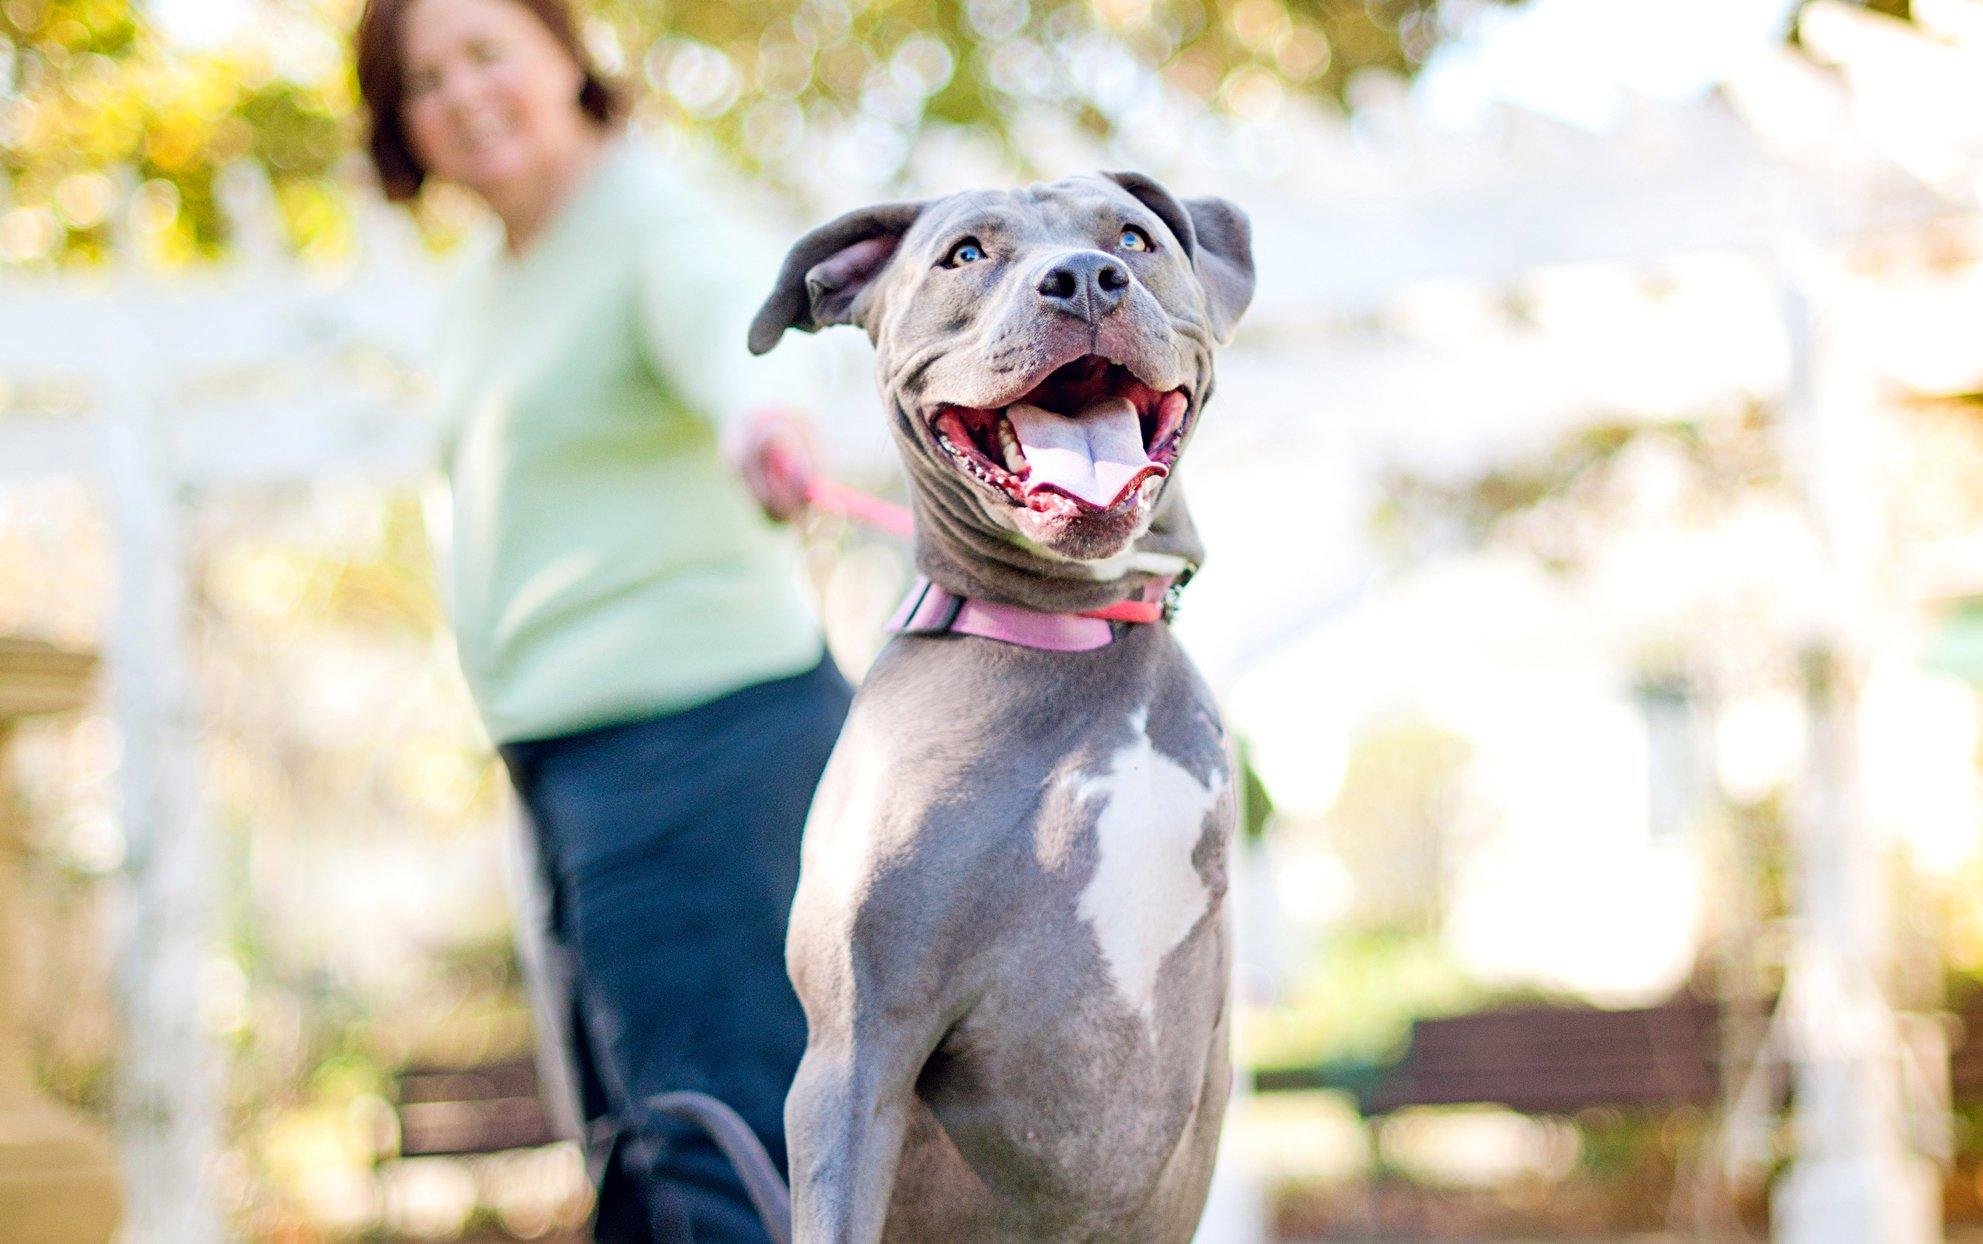 3 Pet Etiquette Tips You Should Know, Even If You Don't Own a Dog